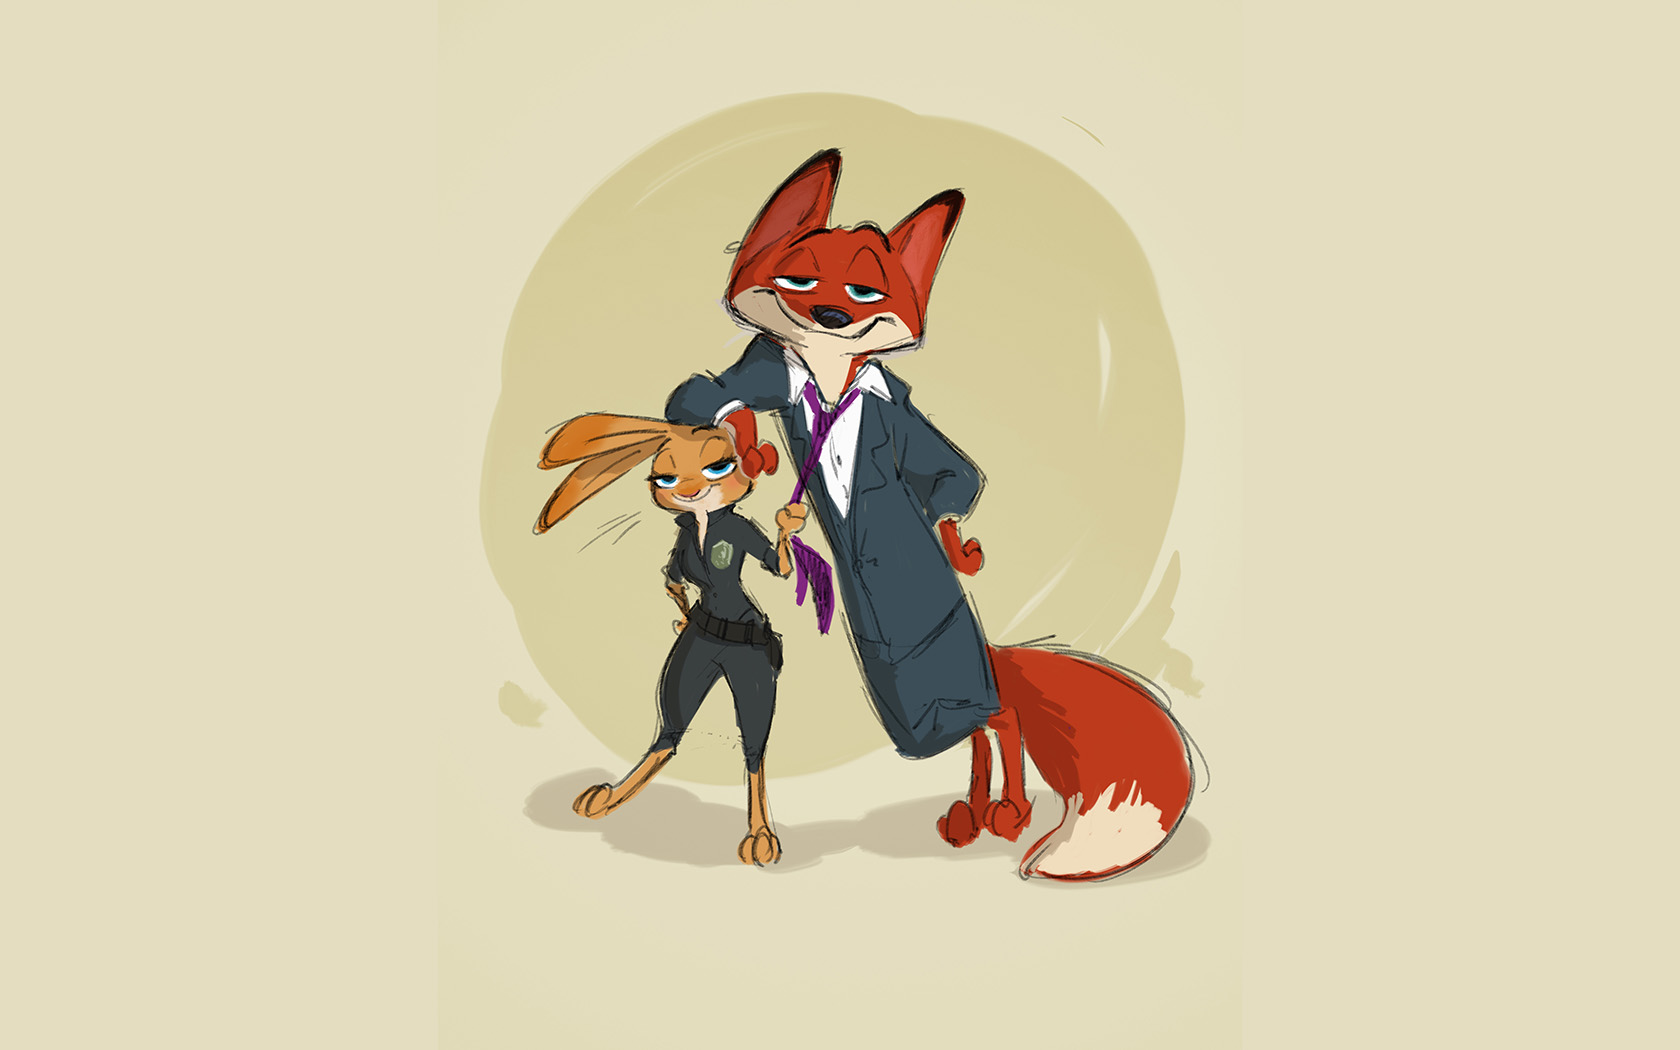 wallpaper for desktop, laptop | au54-zootopia-cute-animal ...